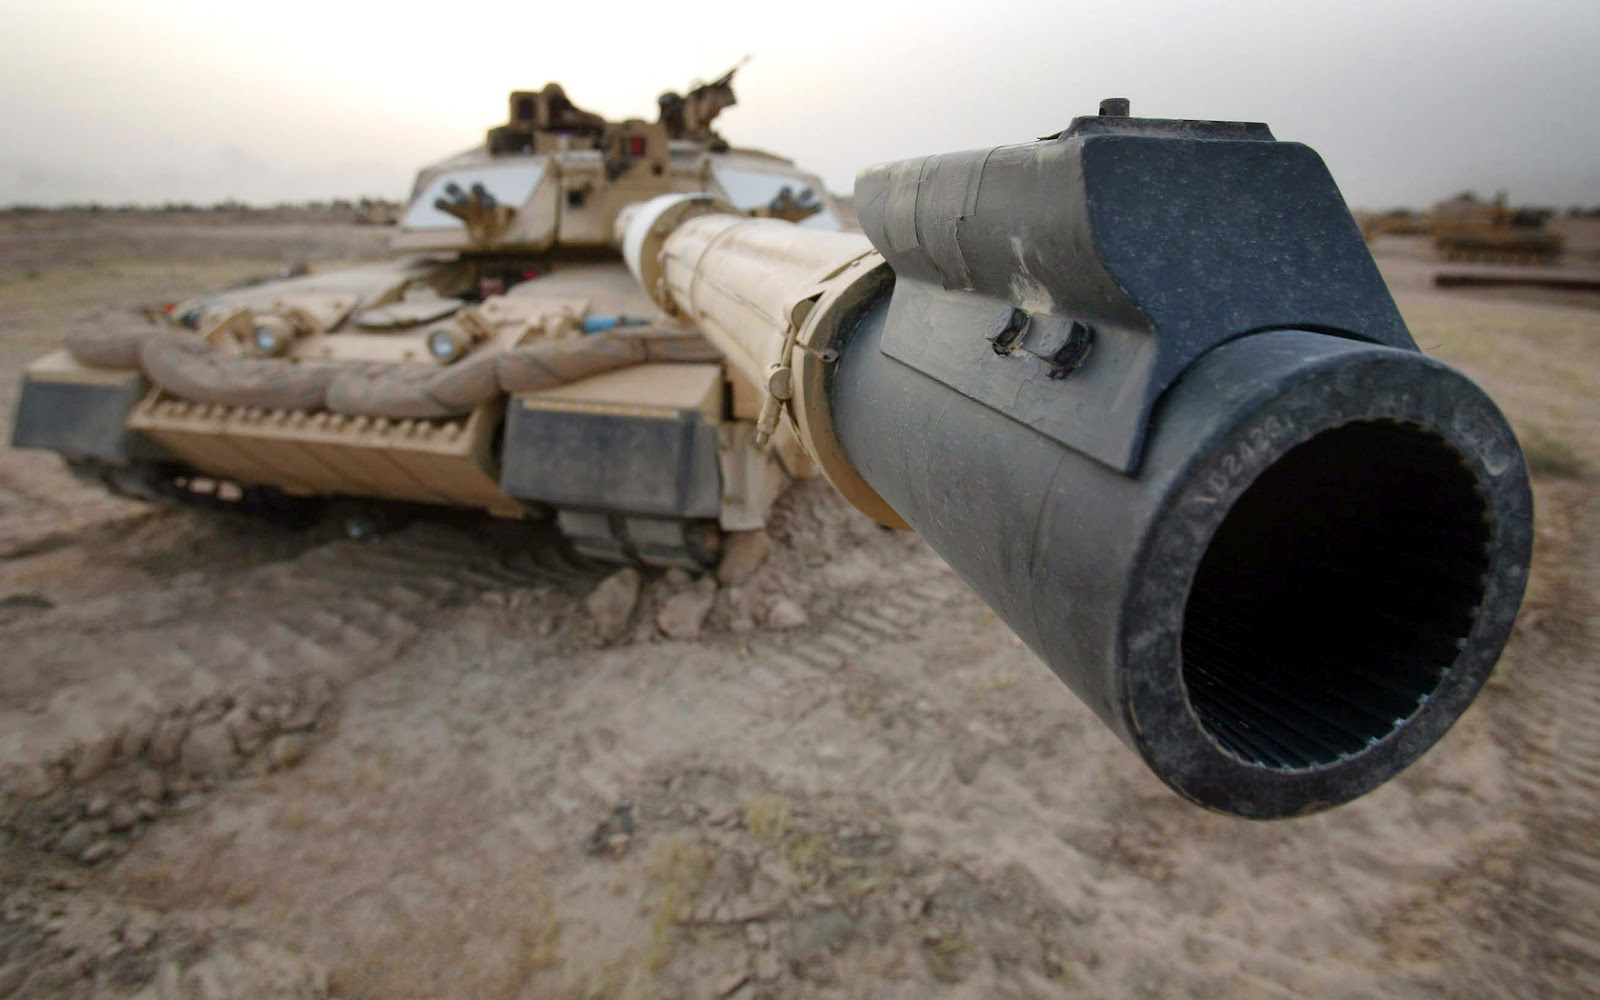 Tank_Barrel_Close_Up_HD_Desktop_Wallpape